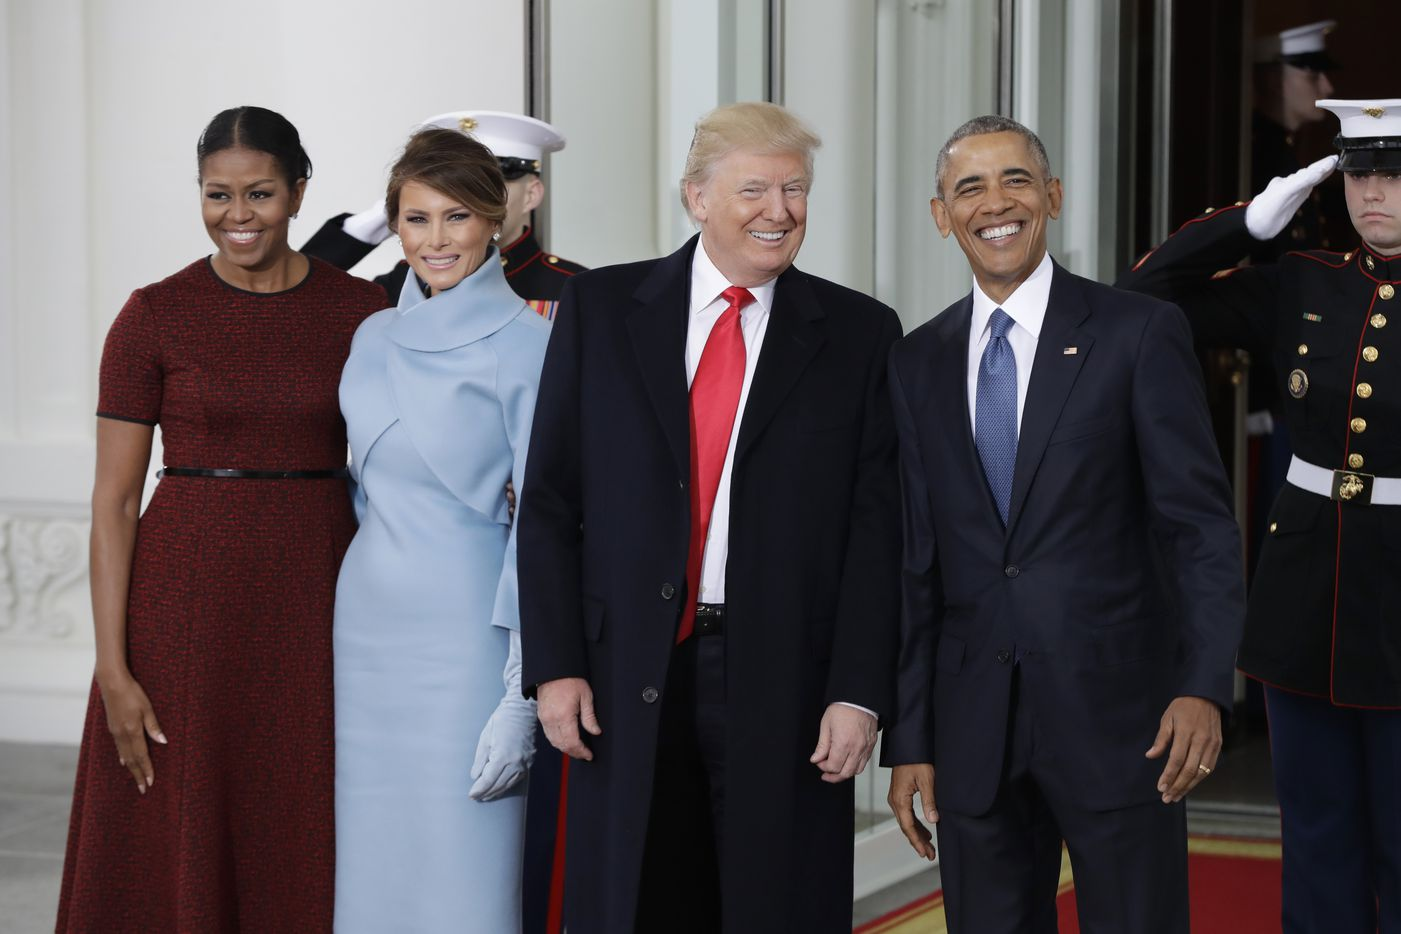 President Barack Obama stands with President-elect Donald Trump, first lady Michelle Obama and Melania Trump at the White House in Washington, Friday, Jan. 20, 2017